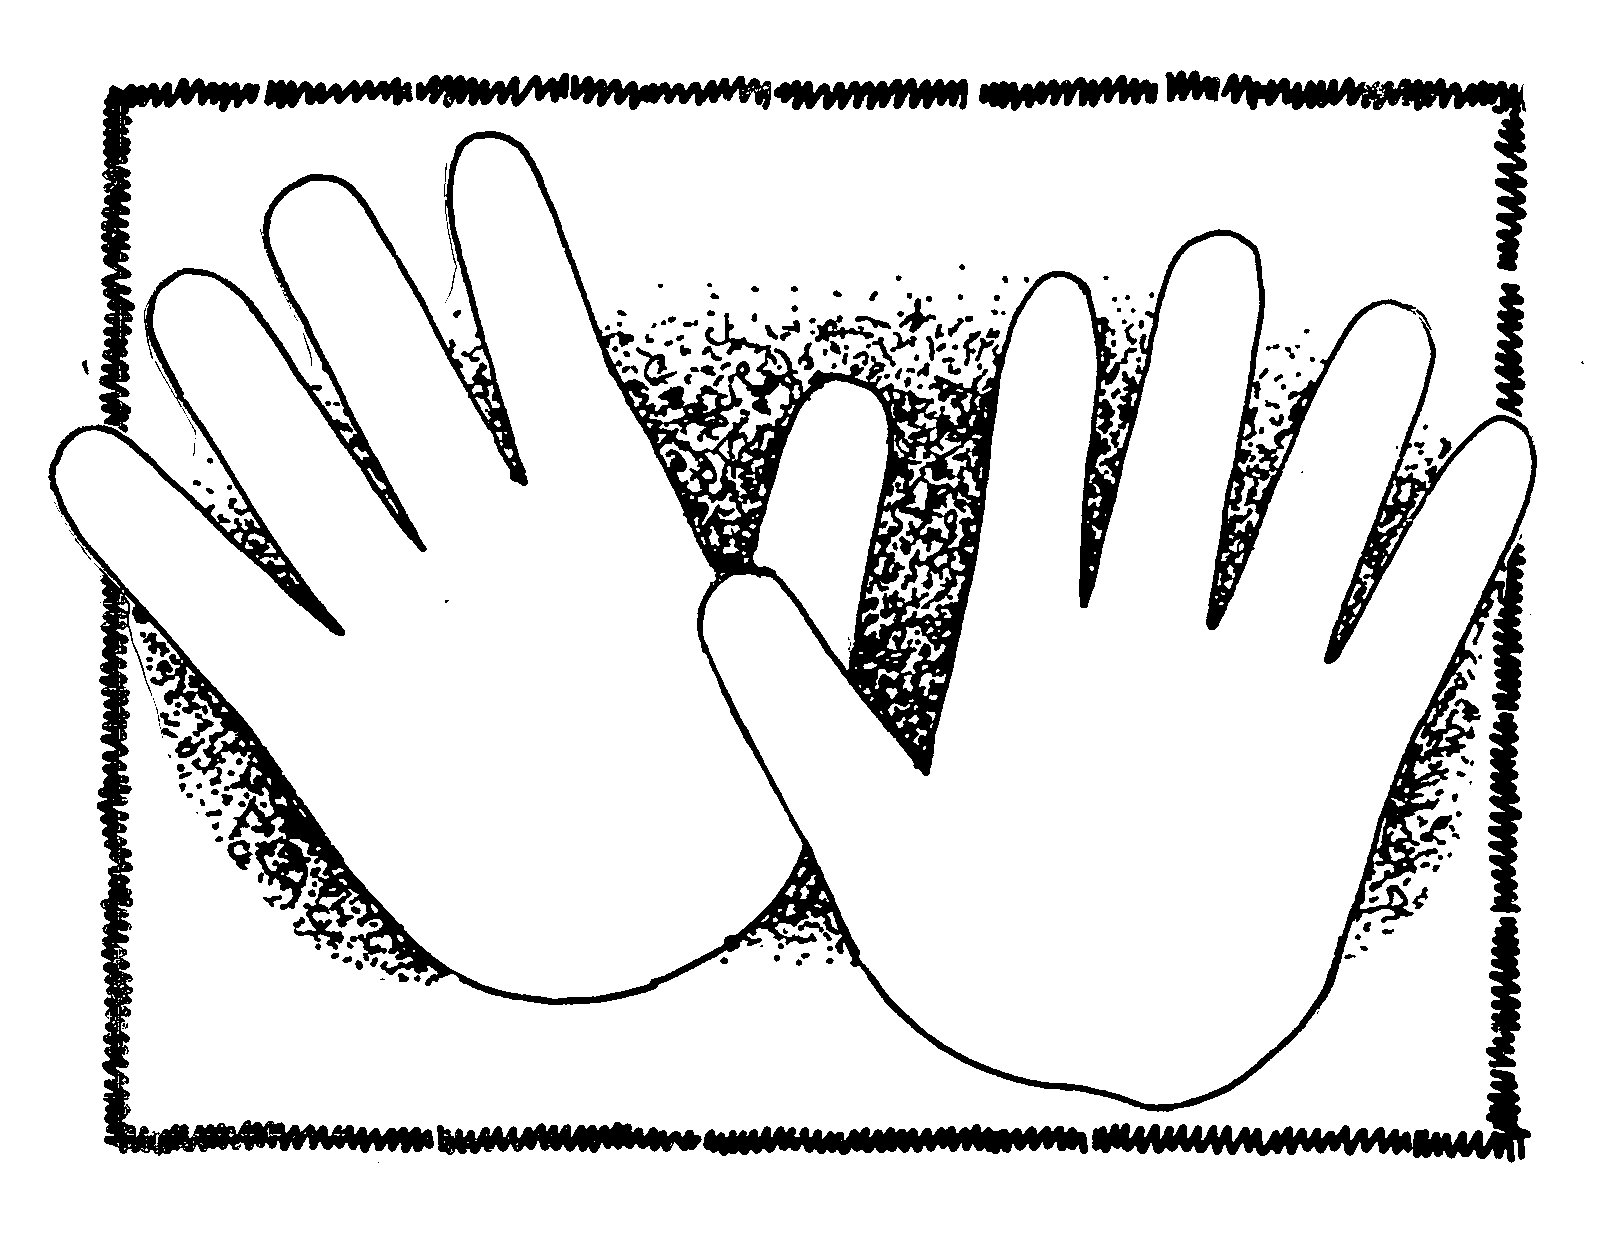 Hand Gesture clipart handout Clip Free Clipart Hand Hand